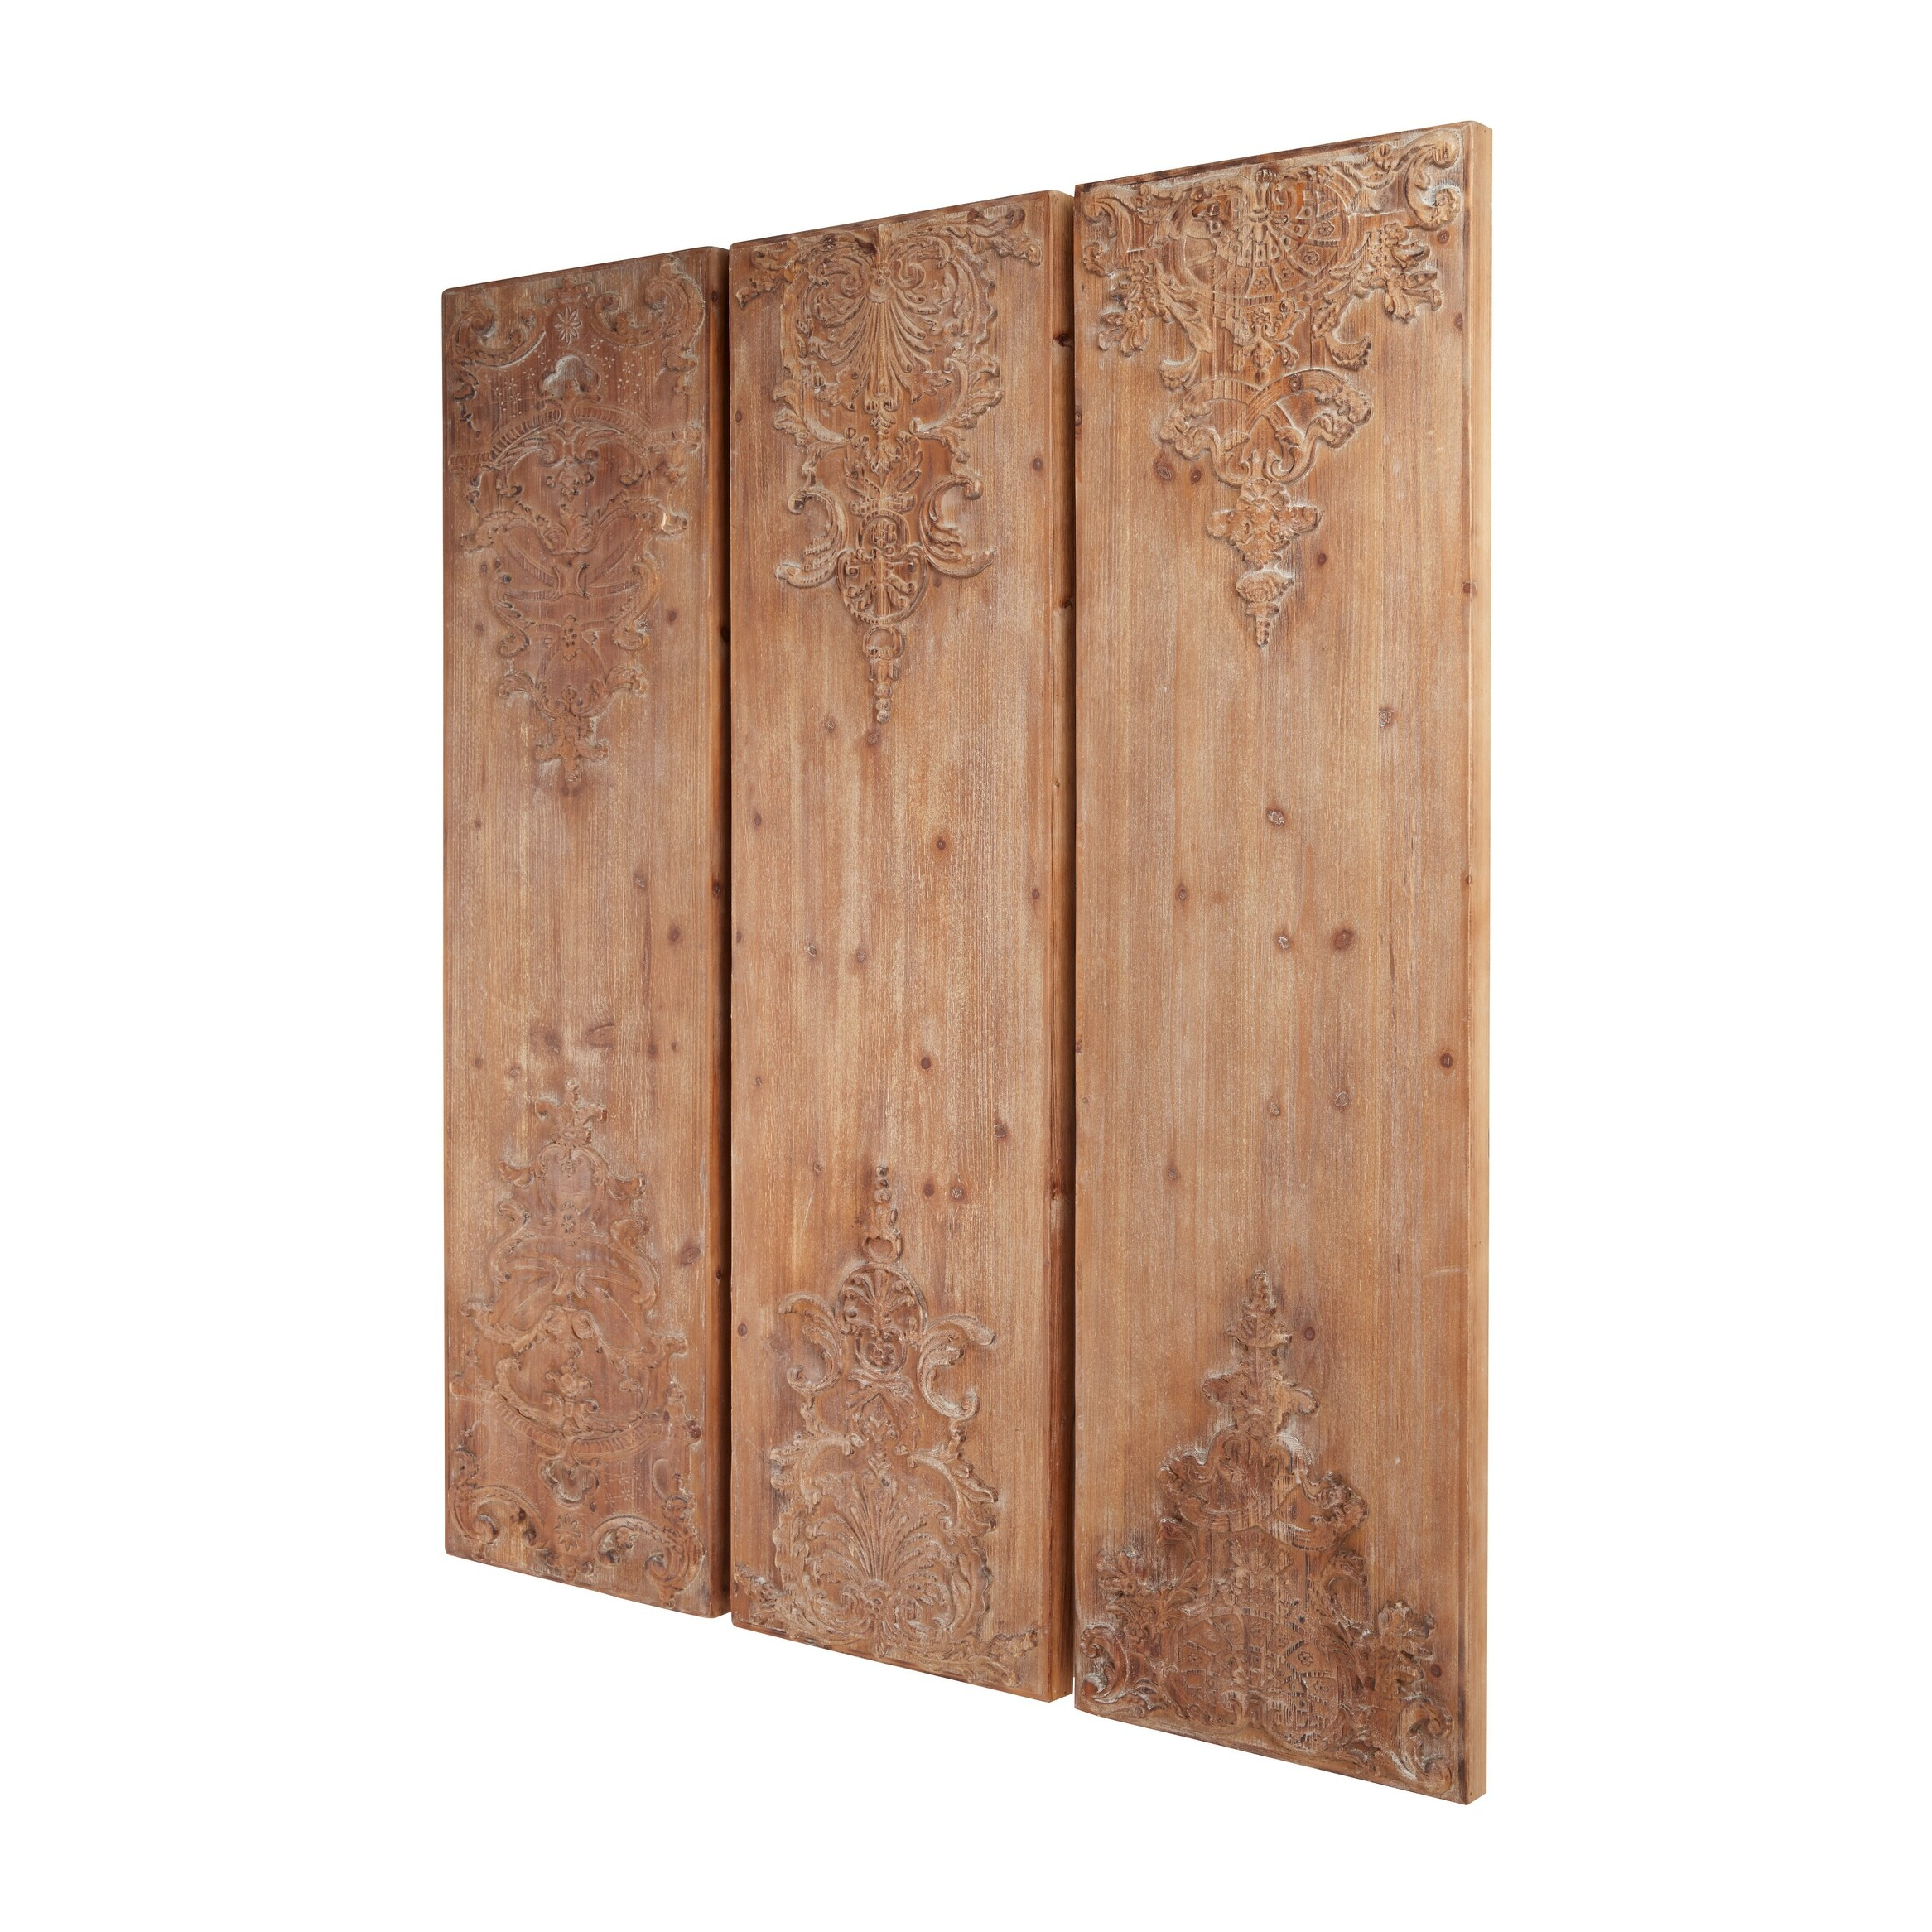 3 Piece Carved Ornate Wall Décor Set Intended For Most Popular Large Hand Carved Natural Wood Wall Decor Panels W Antique And Acanthus Carvings Set Of 3 (View 18 of 20)